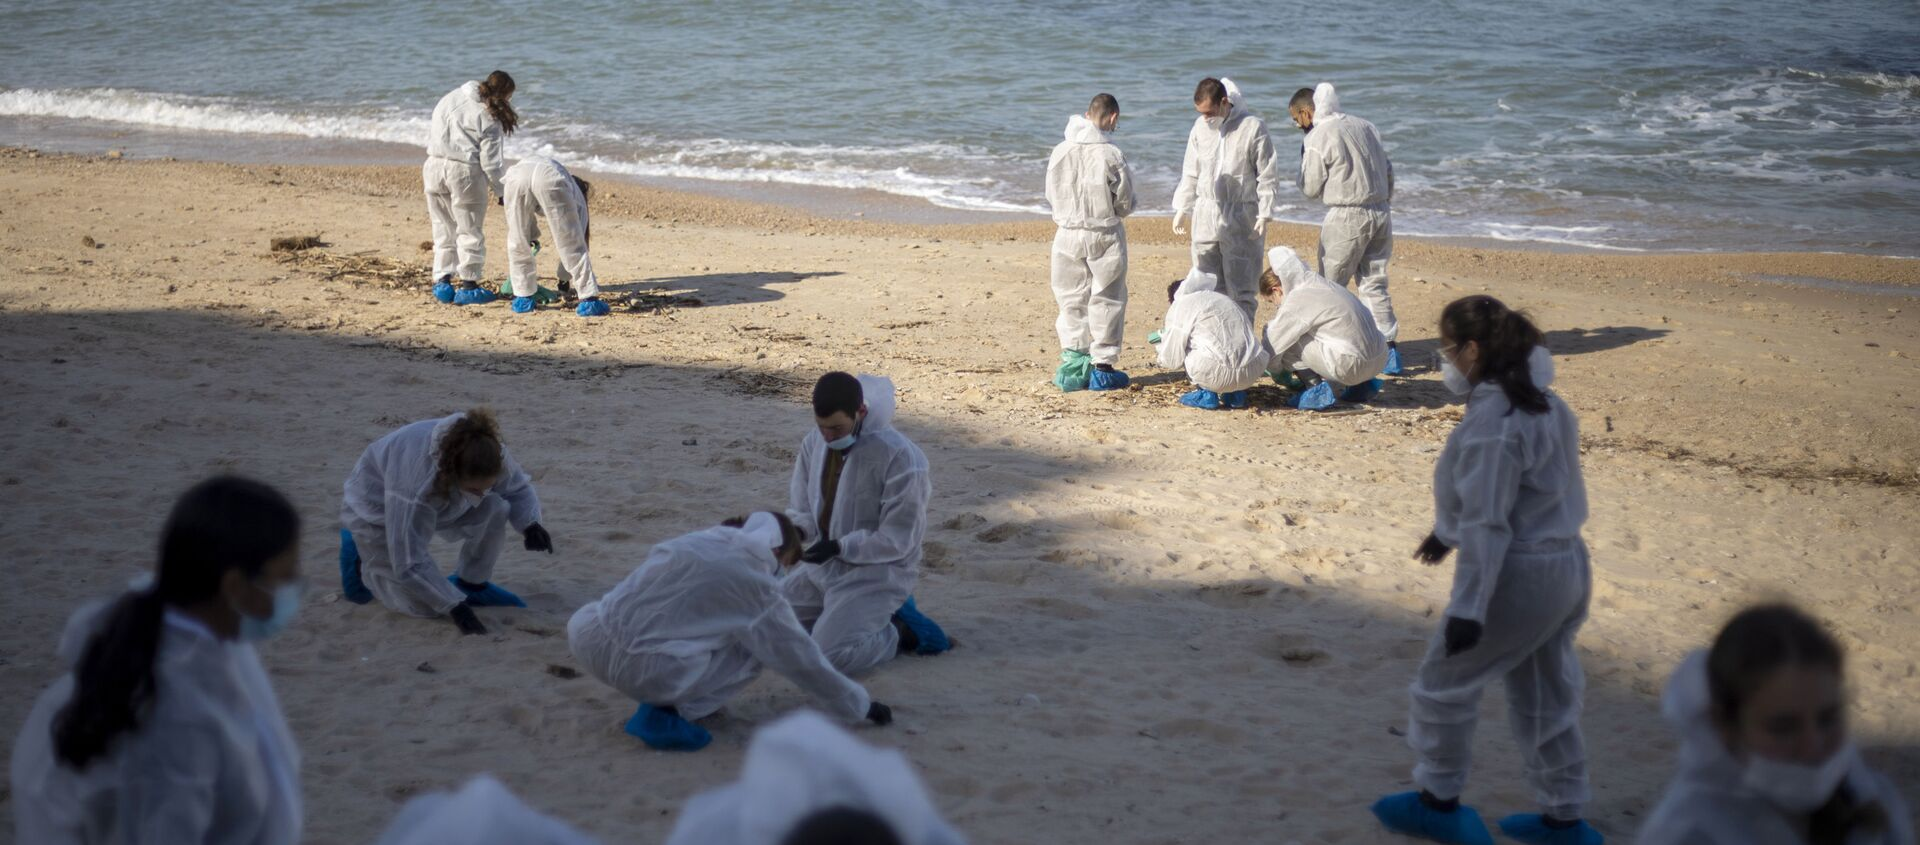 In this Monday, Feb. 22, 2021 file photo, Israeli soldiers wearing protective suits clean tar from a beach after an oil spill in the Mediterranean Sea in Sharon Beach Nature Reserve, near Gaash, Israel. Israeli authorities said they believed a tanker suspected of smuggling oil from Iran to Syria was responsible for spilling tons of crude into the Mediterranean last month, causing one of Israel's worst environmental disasters. - Sputnik Italia, 1920, 05.03.2021